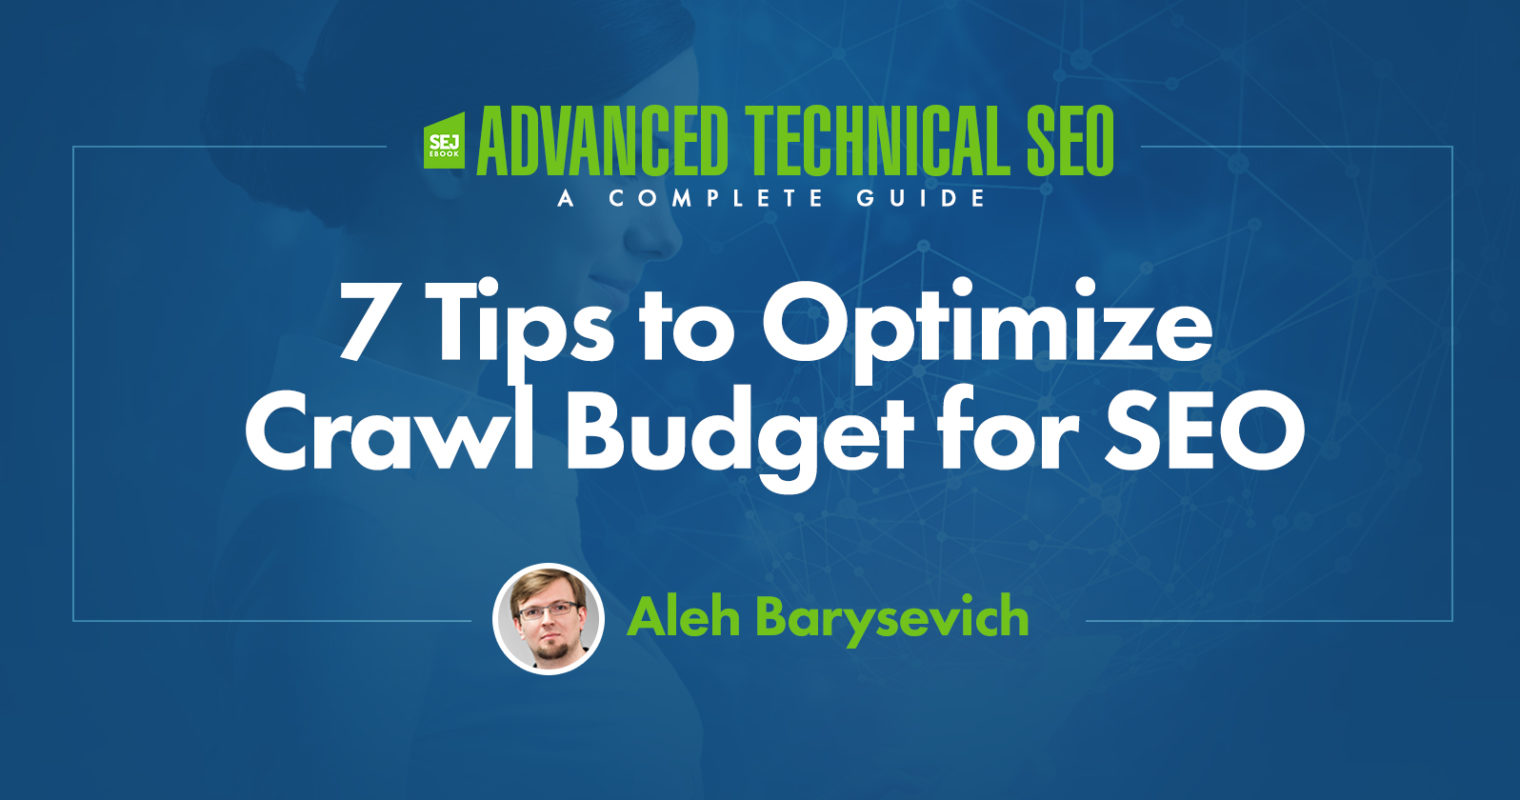 7 Tips to Optimize Crawl Budget for SEO